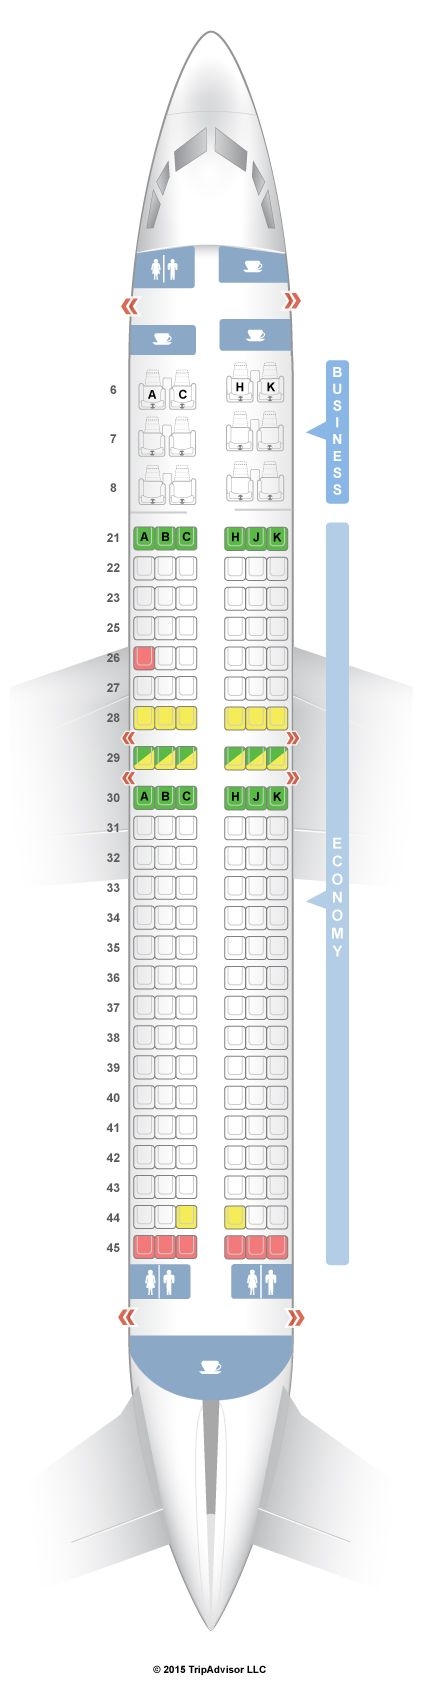 Seatguru Seat Map Garuda Indonesia Boeing 737 800 738